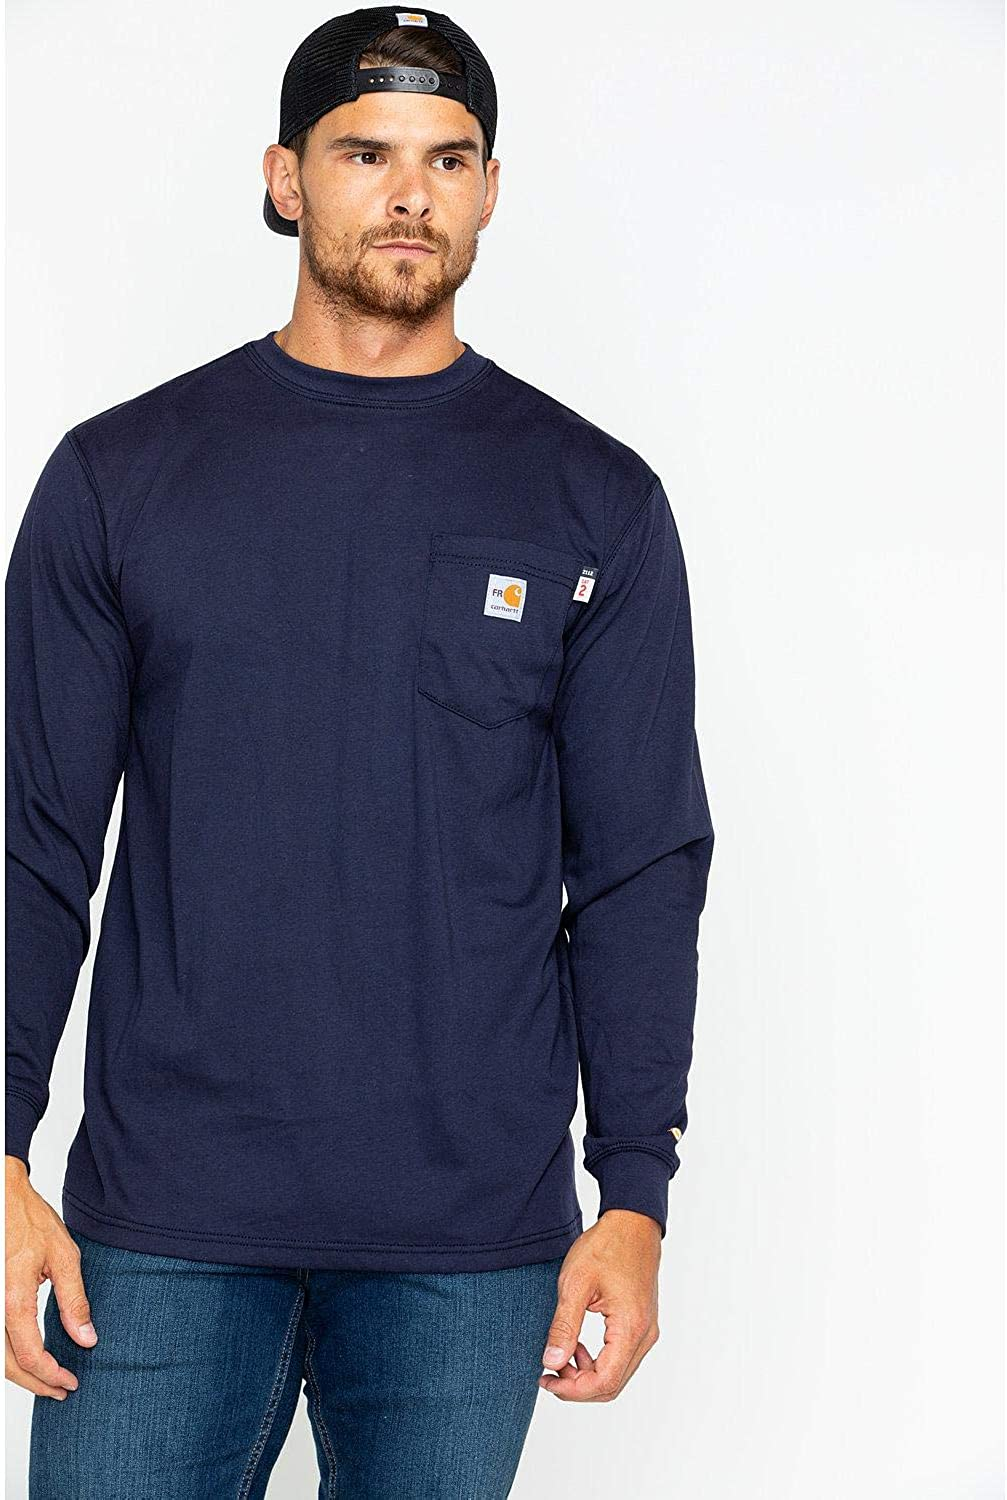 Amazon Com Carhartt Men S Flame Resistant Force Cotton Long Sleeve T Shirt Clothing